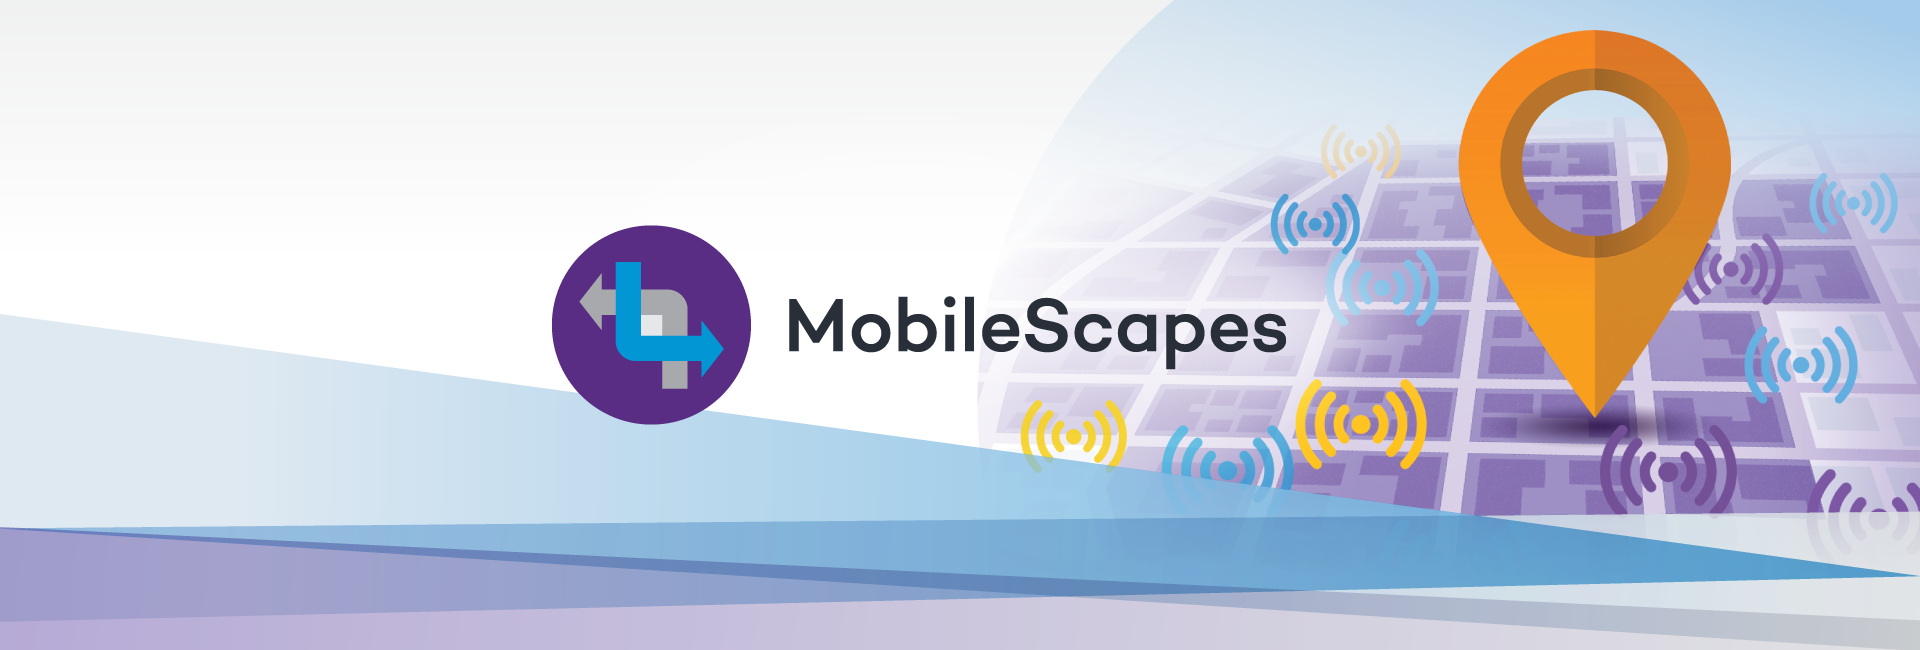 MobileScapes-Mobile-Analytics-Homepage-Banner